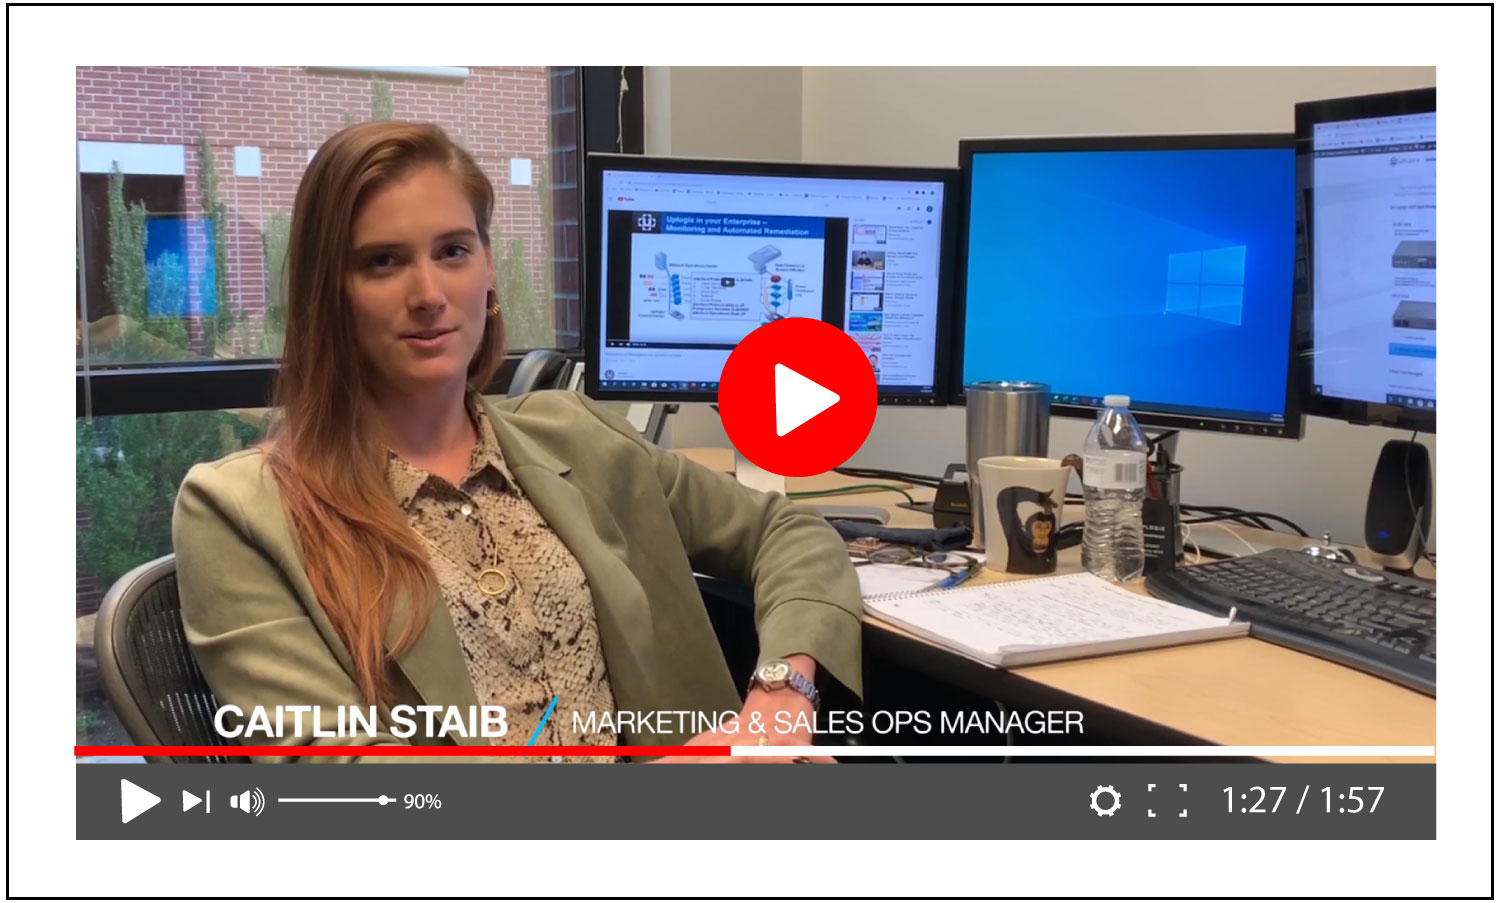 Meet Uplogix: Caitlin Staib, Marketing & Sales Ops Manager